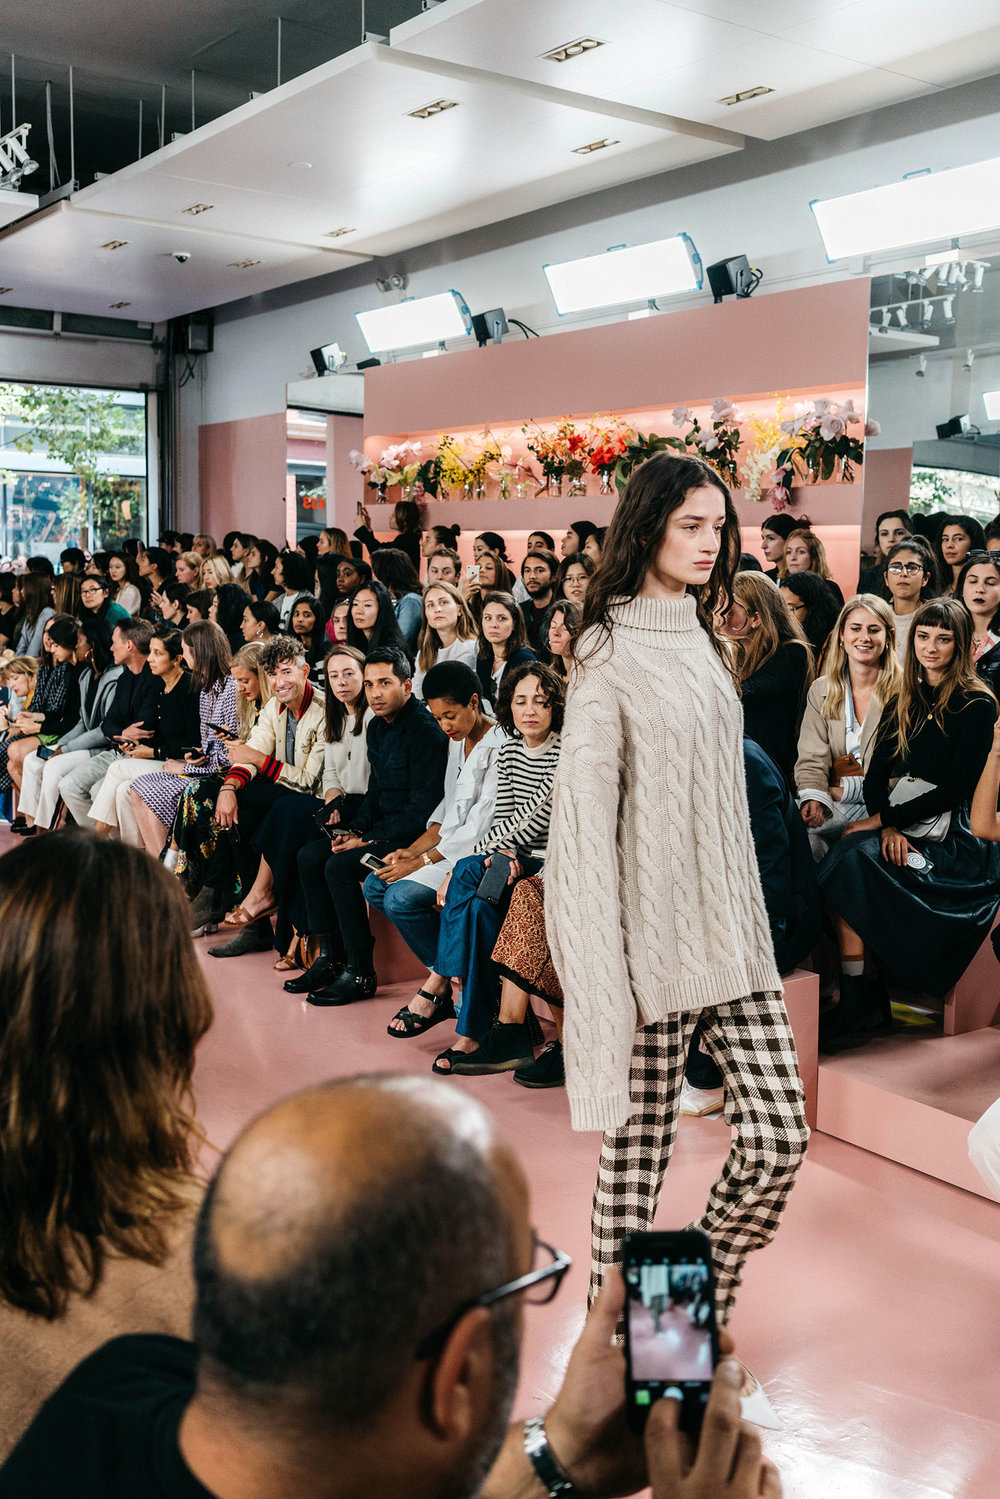 Mansur Gavriel  SS18 Runway Show and debut of the brand's RTW collection